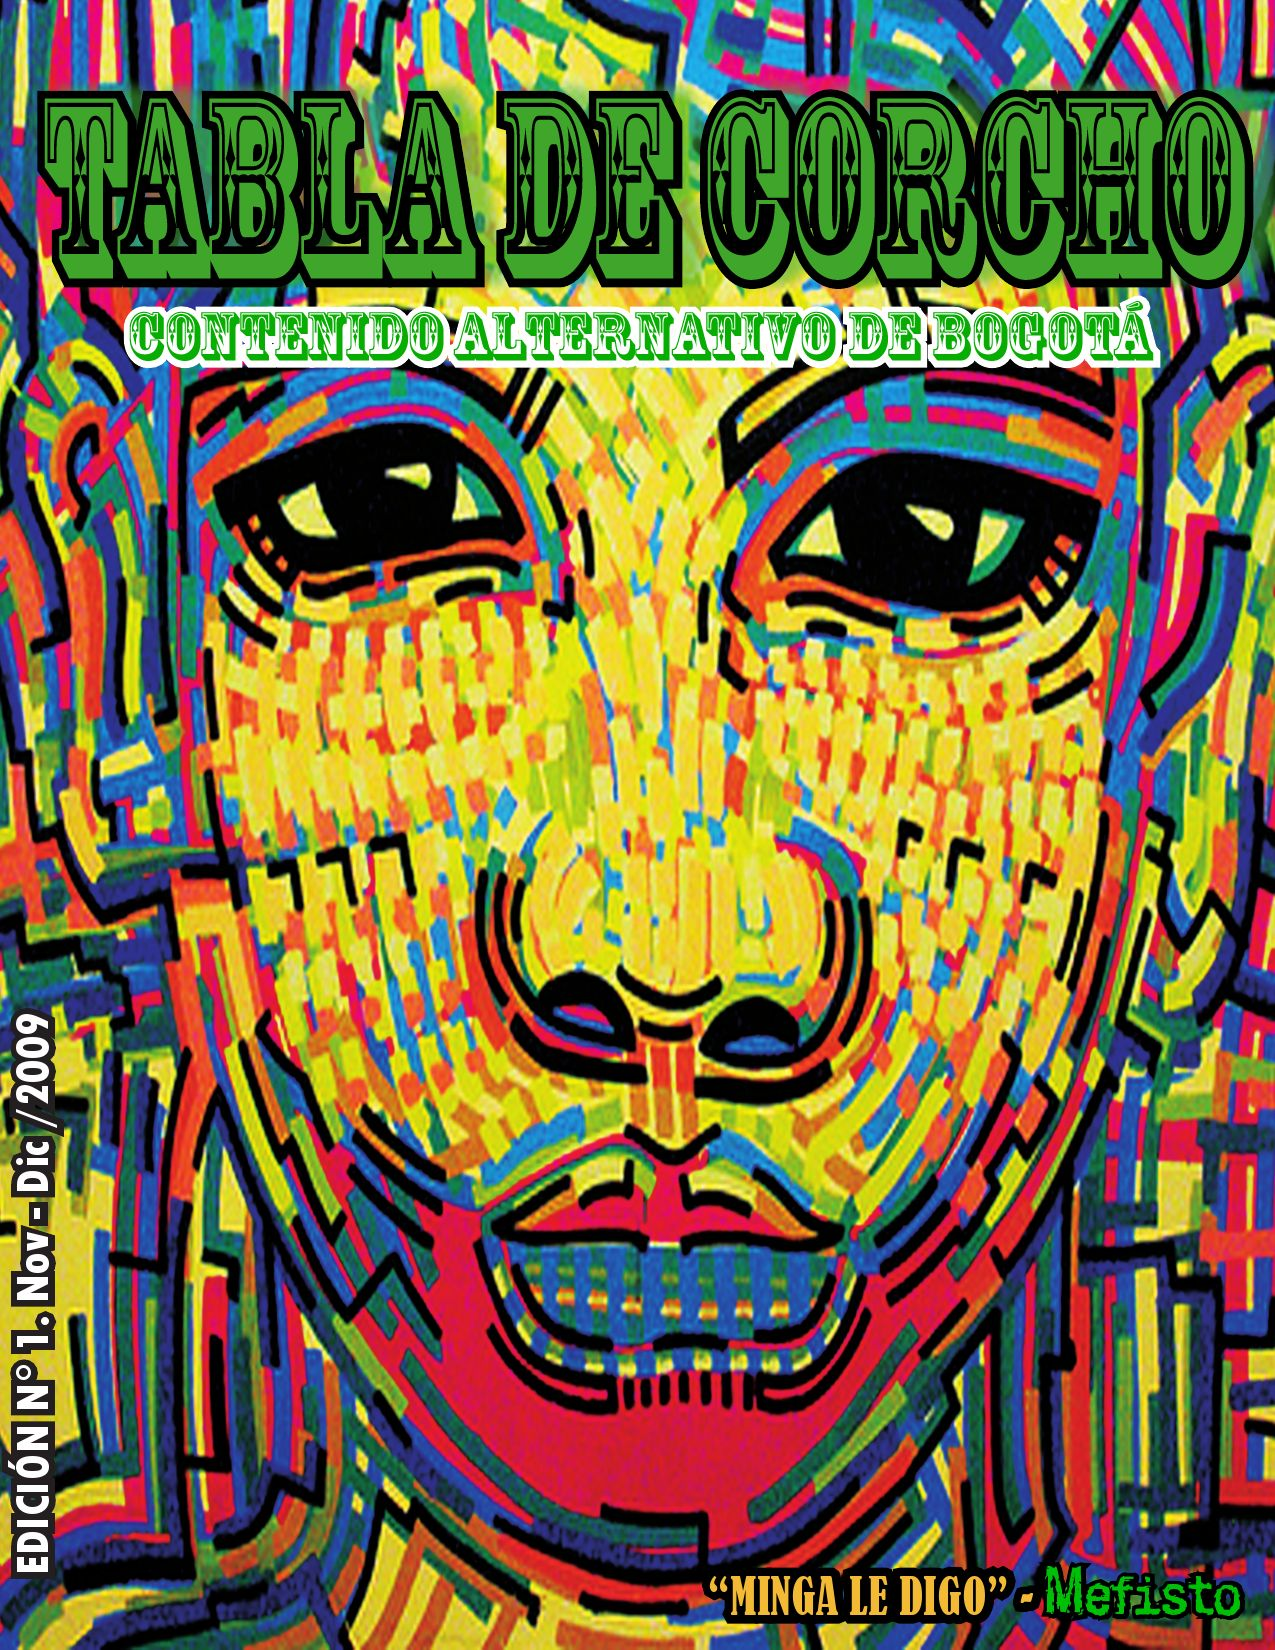 Tabla de corcho by dar o puentes issuu - Tabla de corcho ...